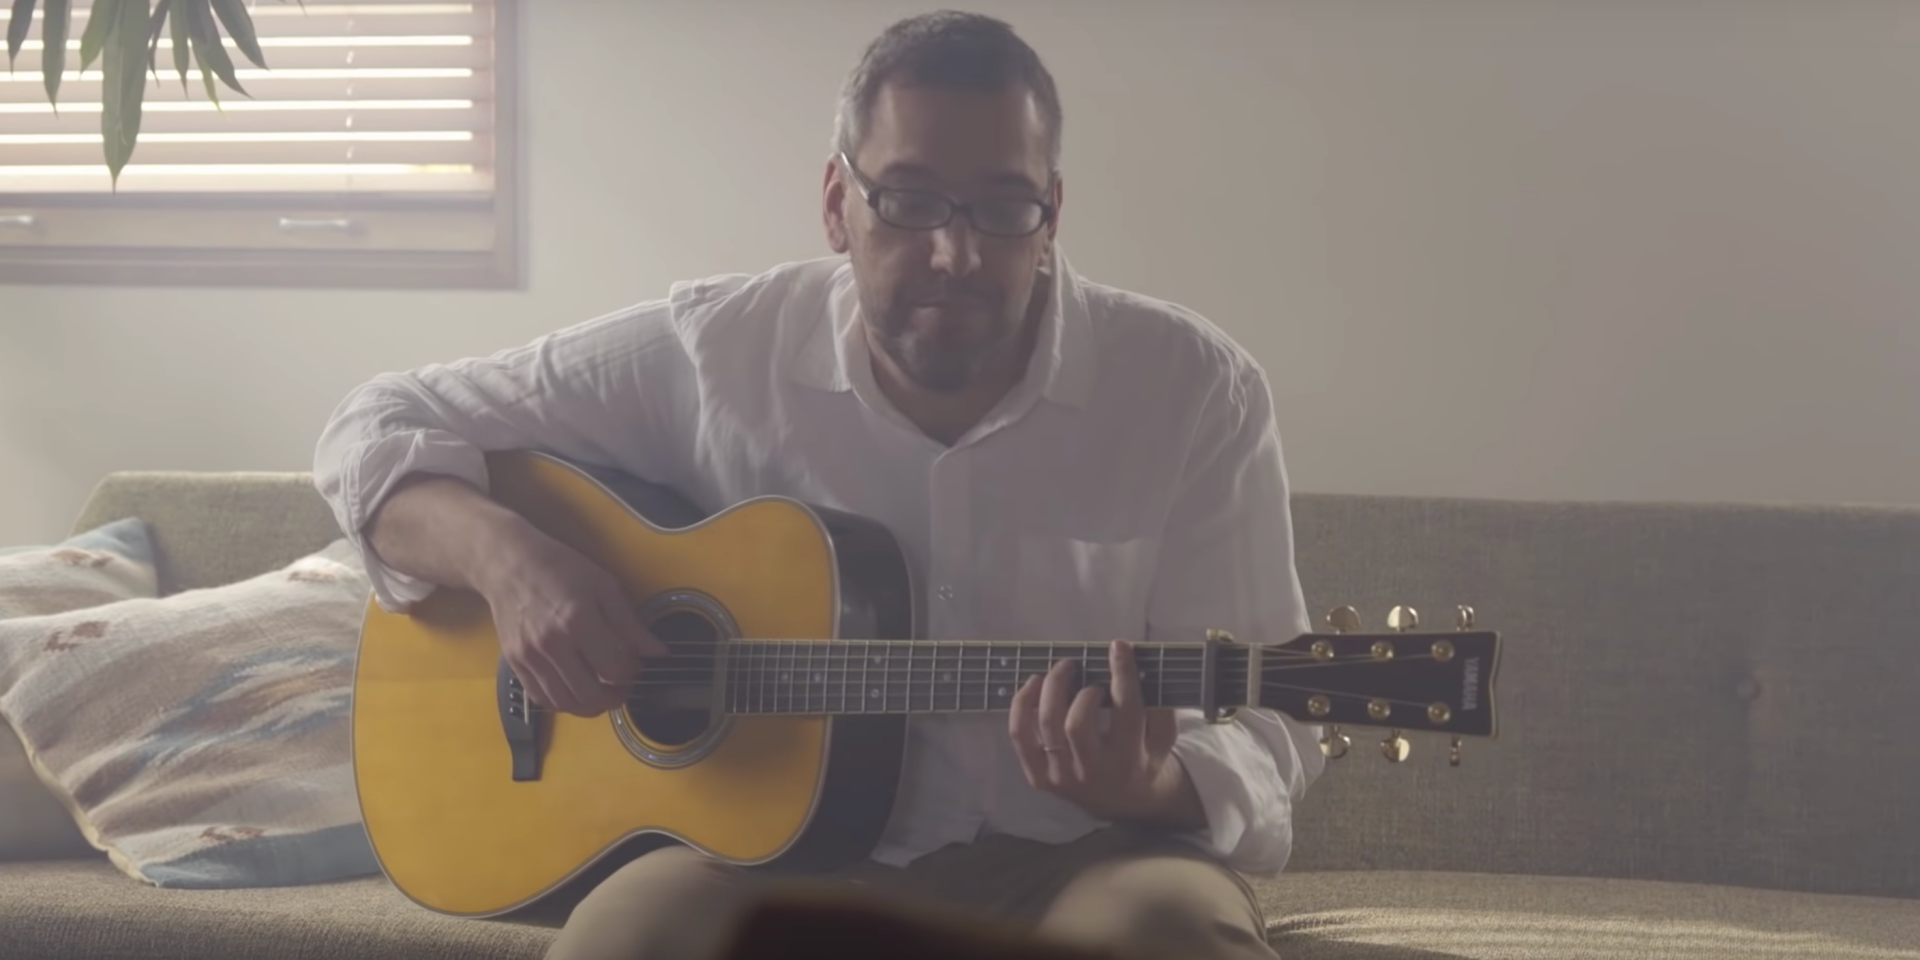 Spread the joy of music and get a new TransAcoustic guitar with Yamaha's trade-in programme